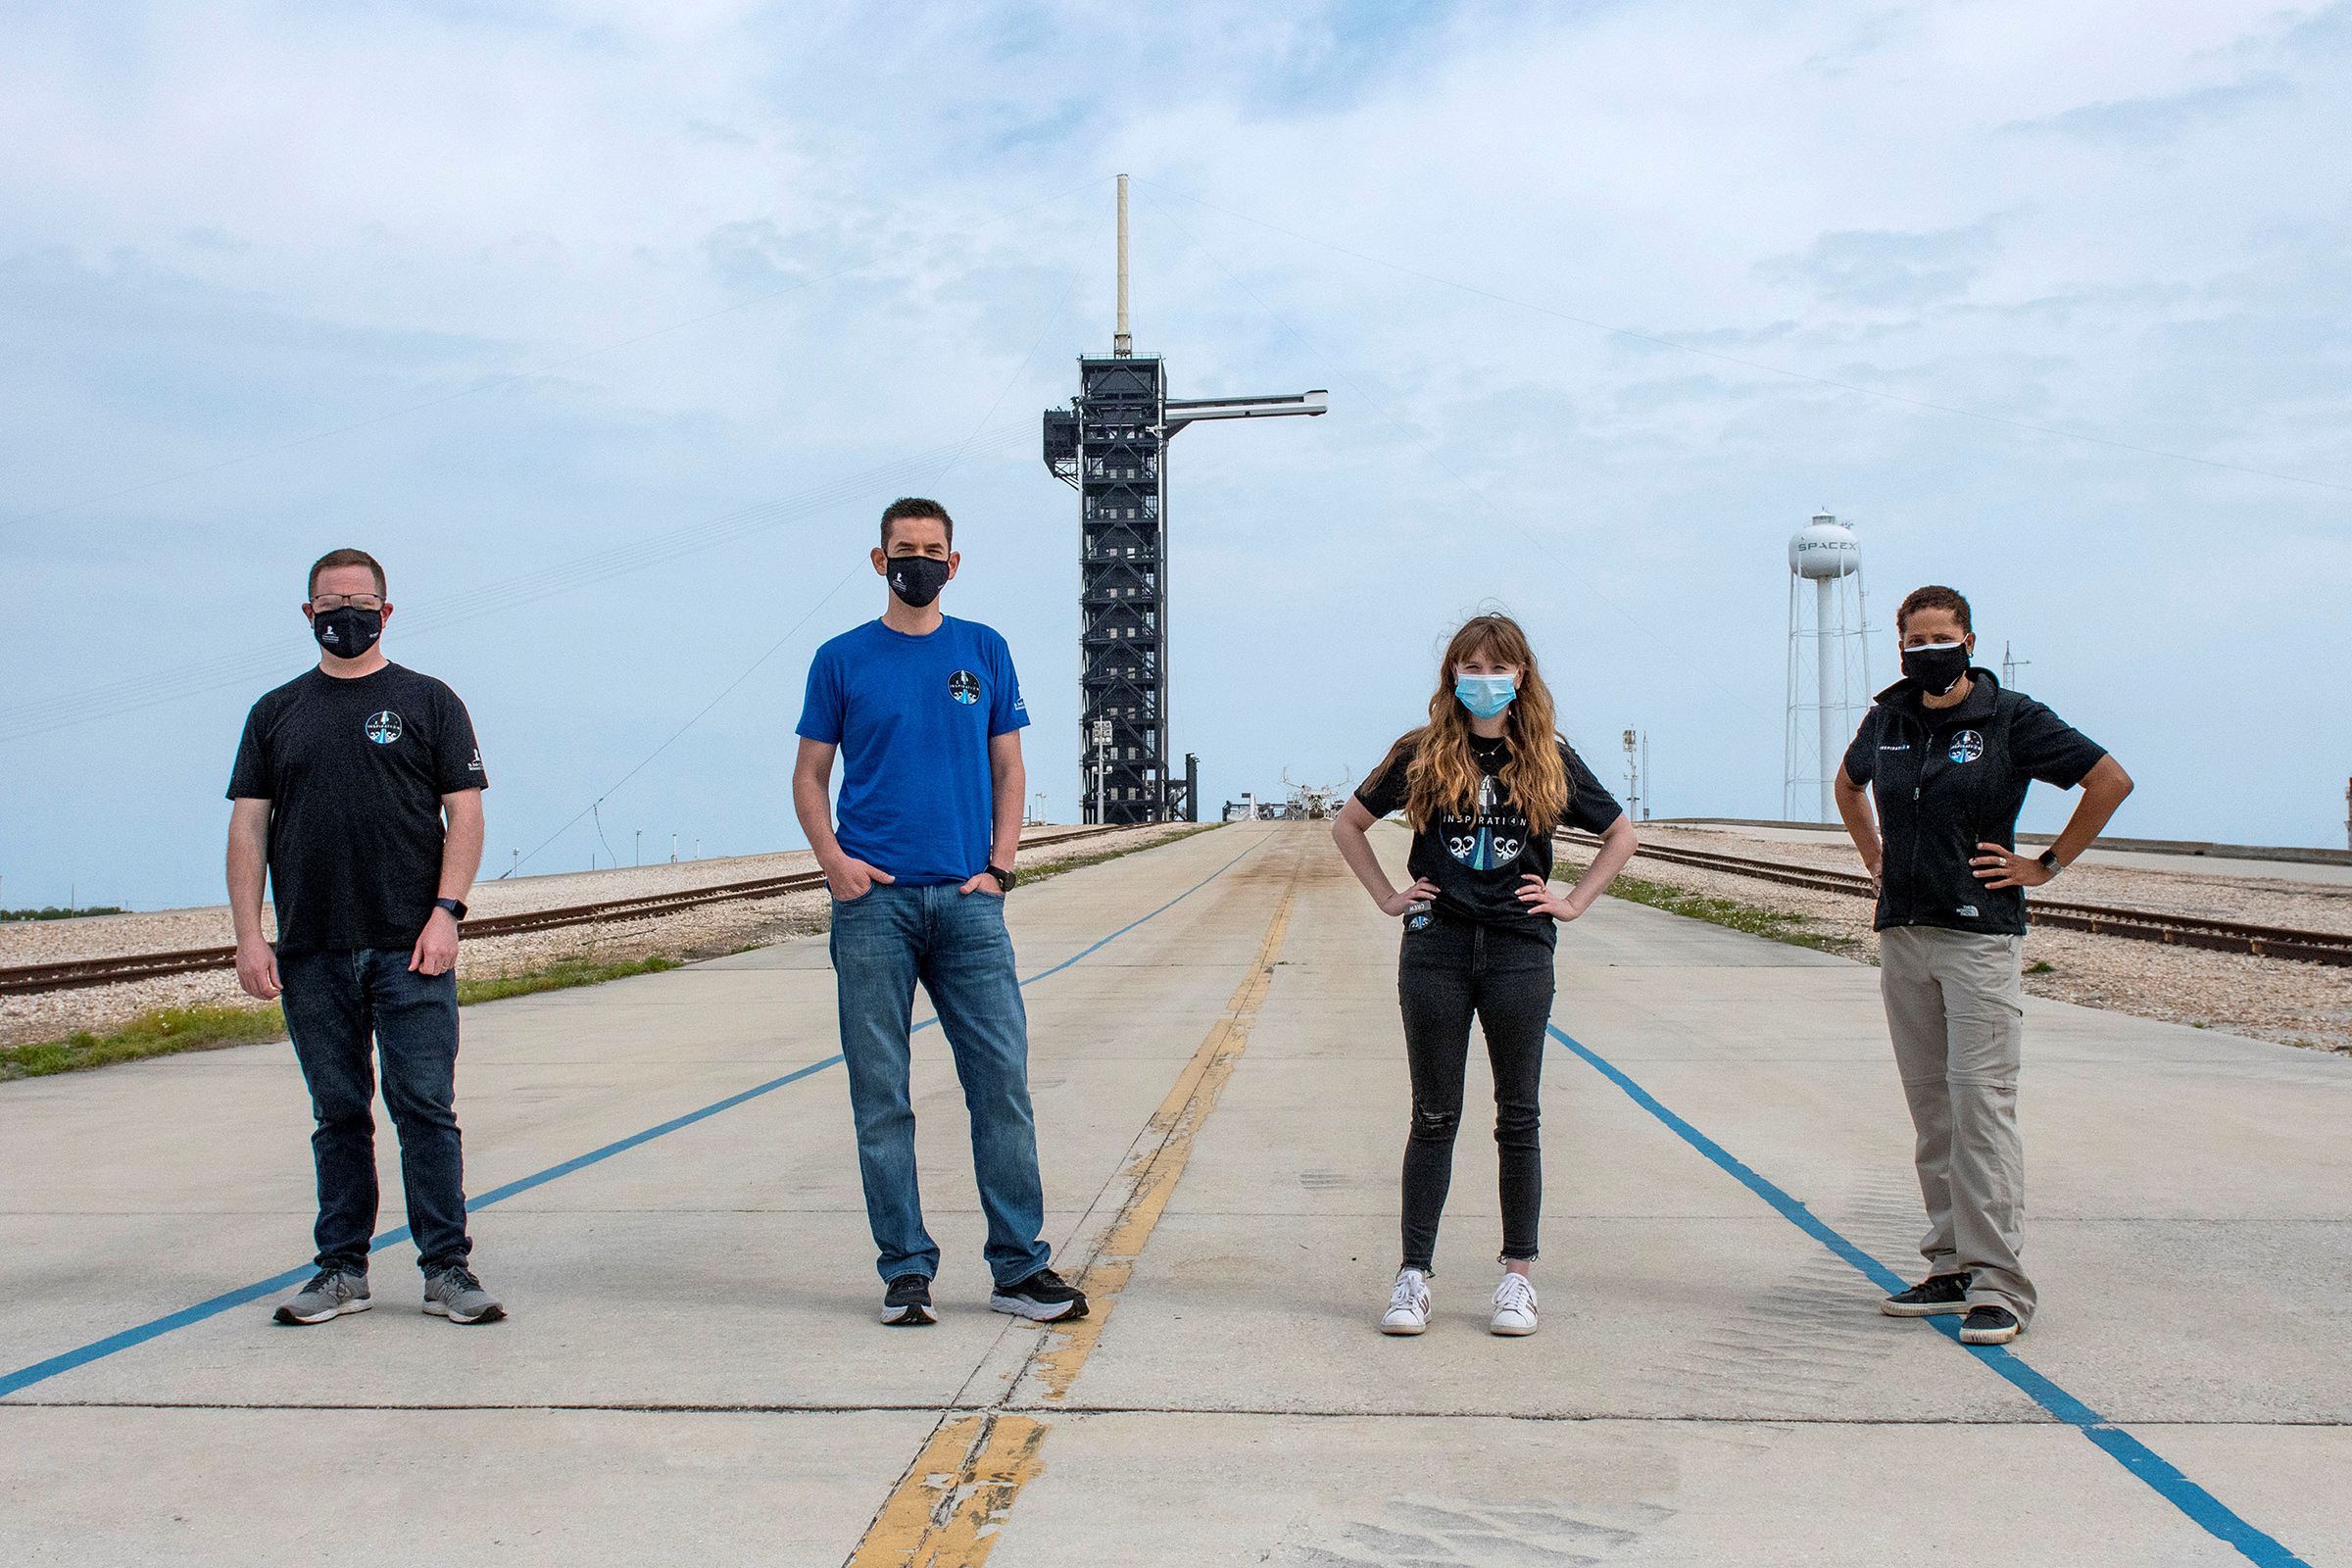 Chris Sembroski, Jared Isaacman, Hayley Arceneaux and Sian Proctor pose for a photo at NASA's Kennedy Space Center at Cape Canaveral, Florida, on March 29.